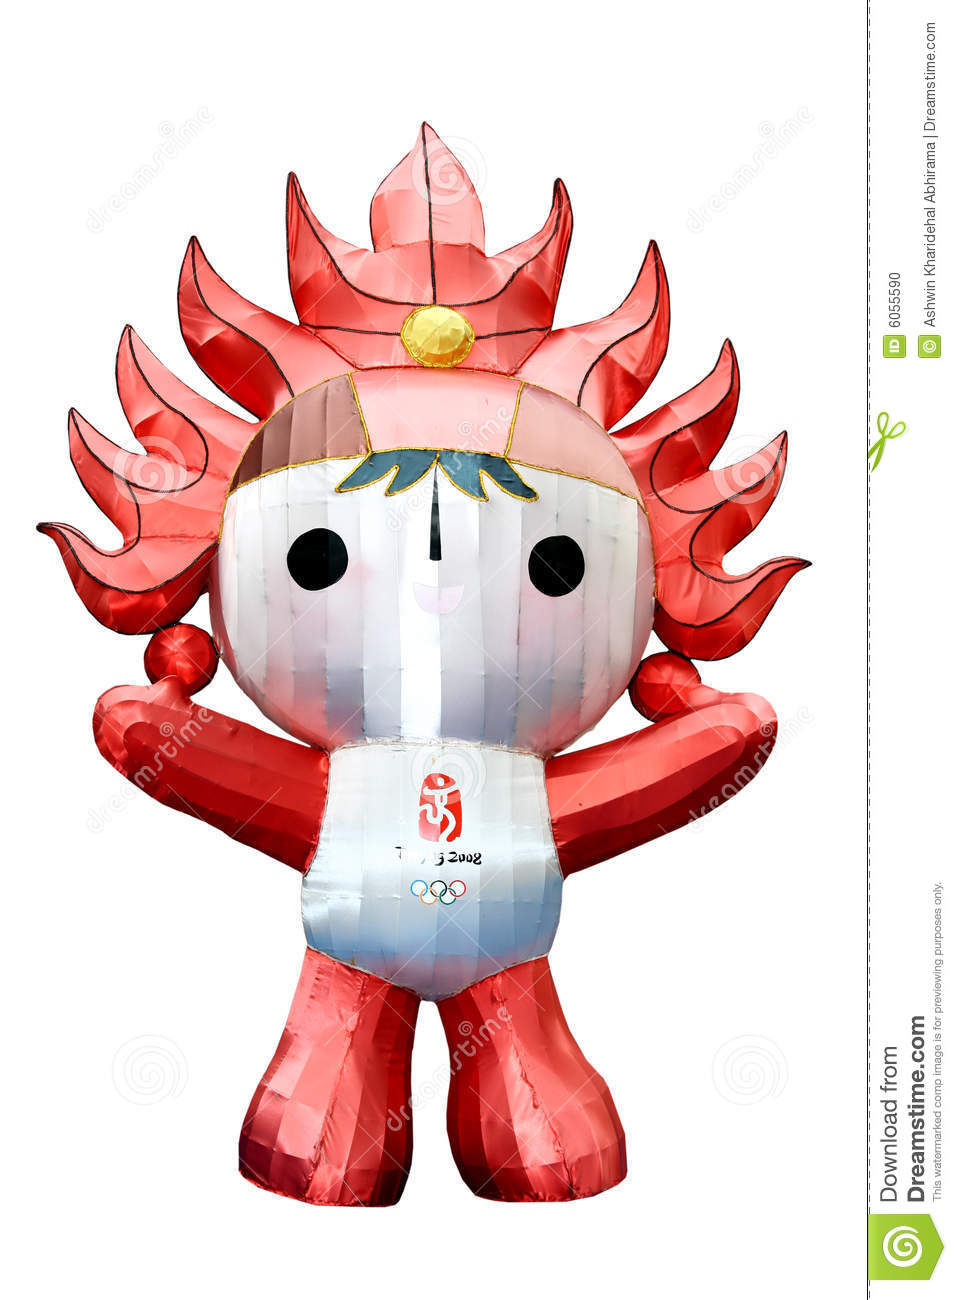 Huanhuan The Beijing Olympic Mascot Editorial Image Image Of